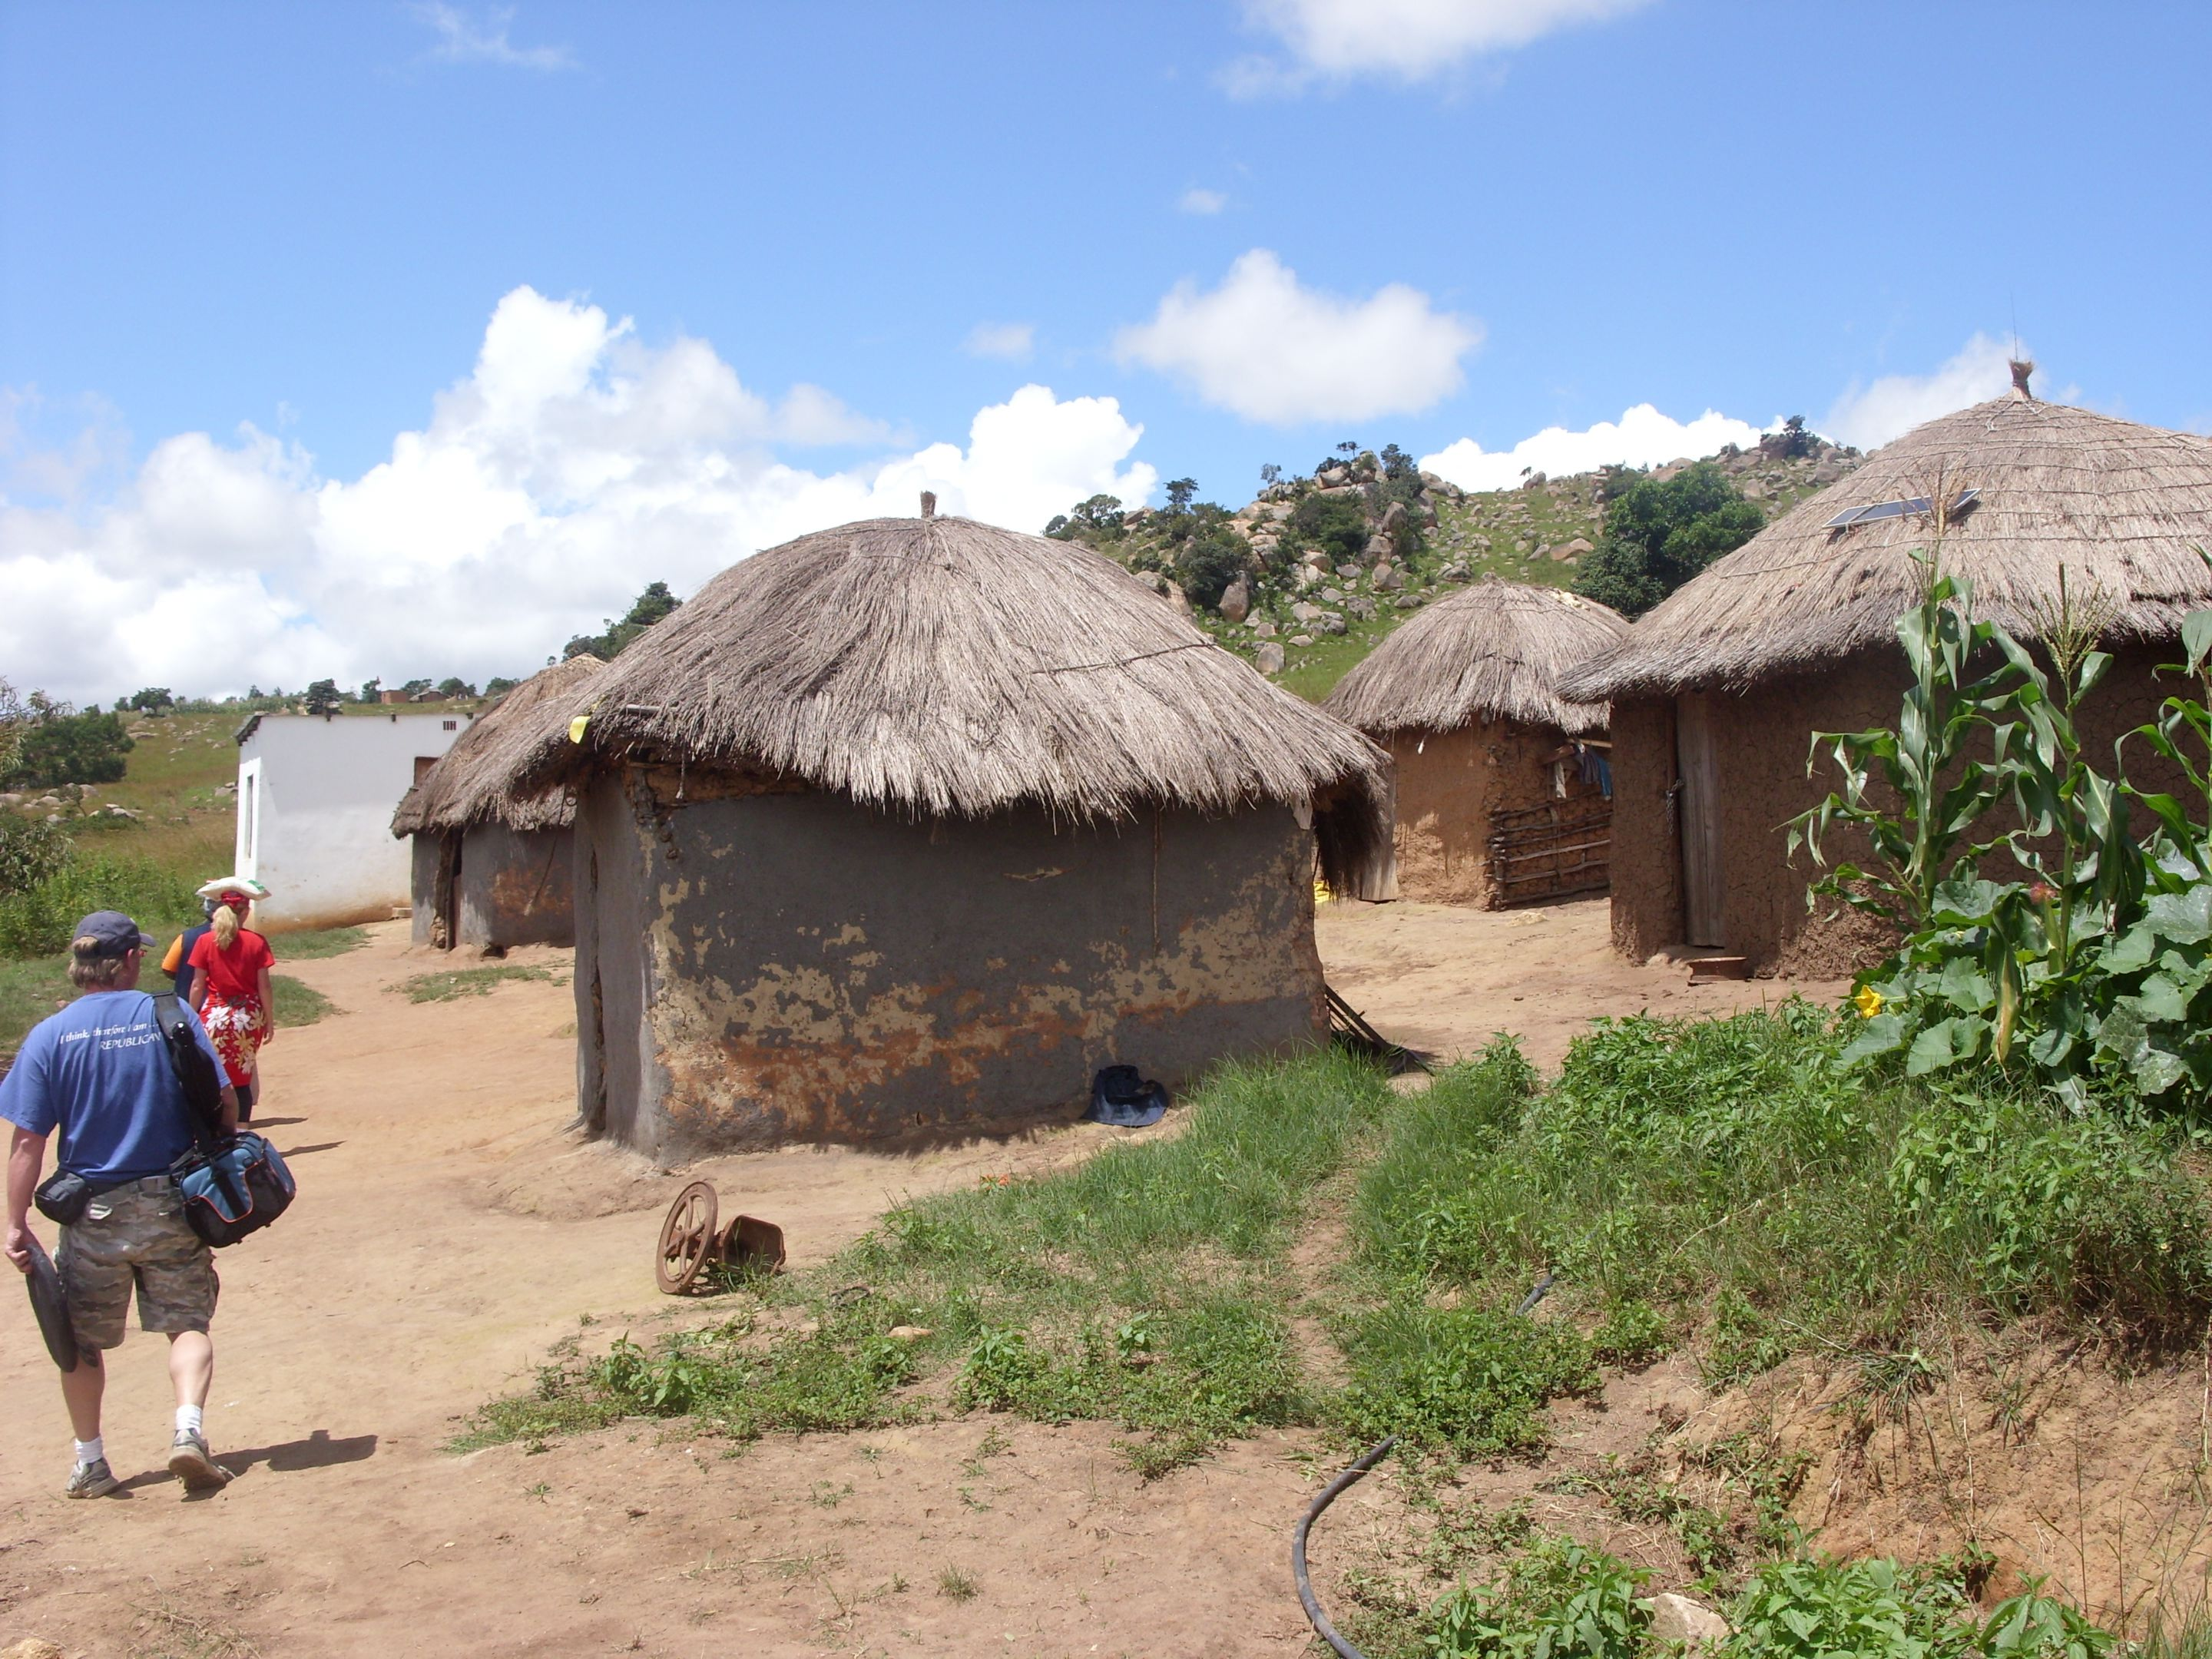 Typical home made of mud and sticks